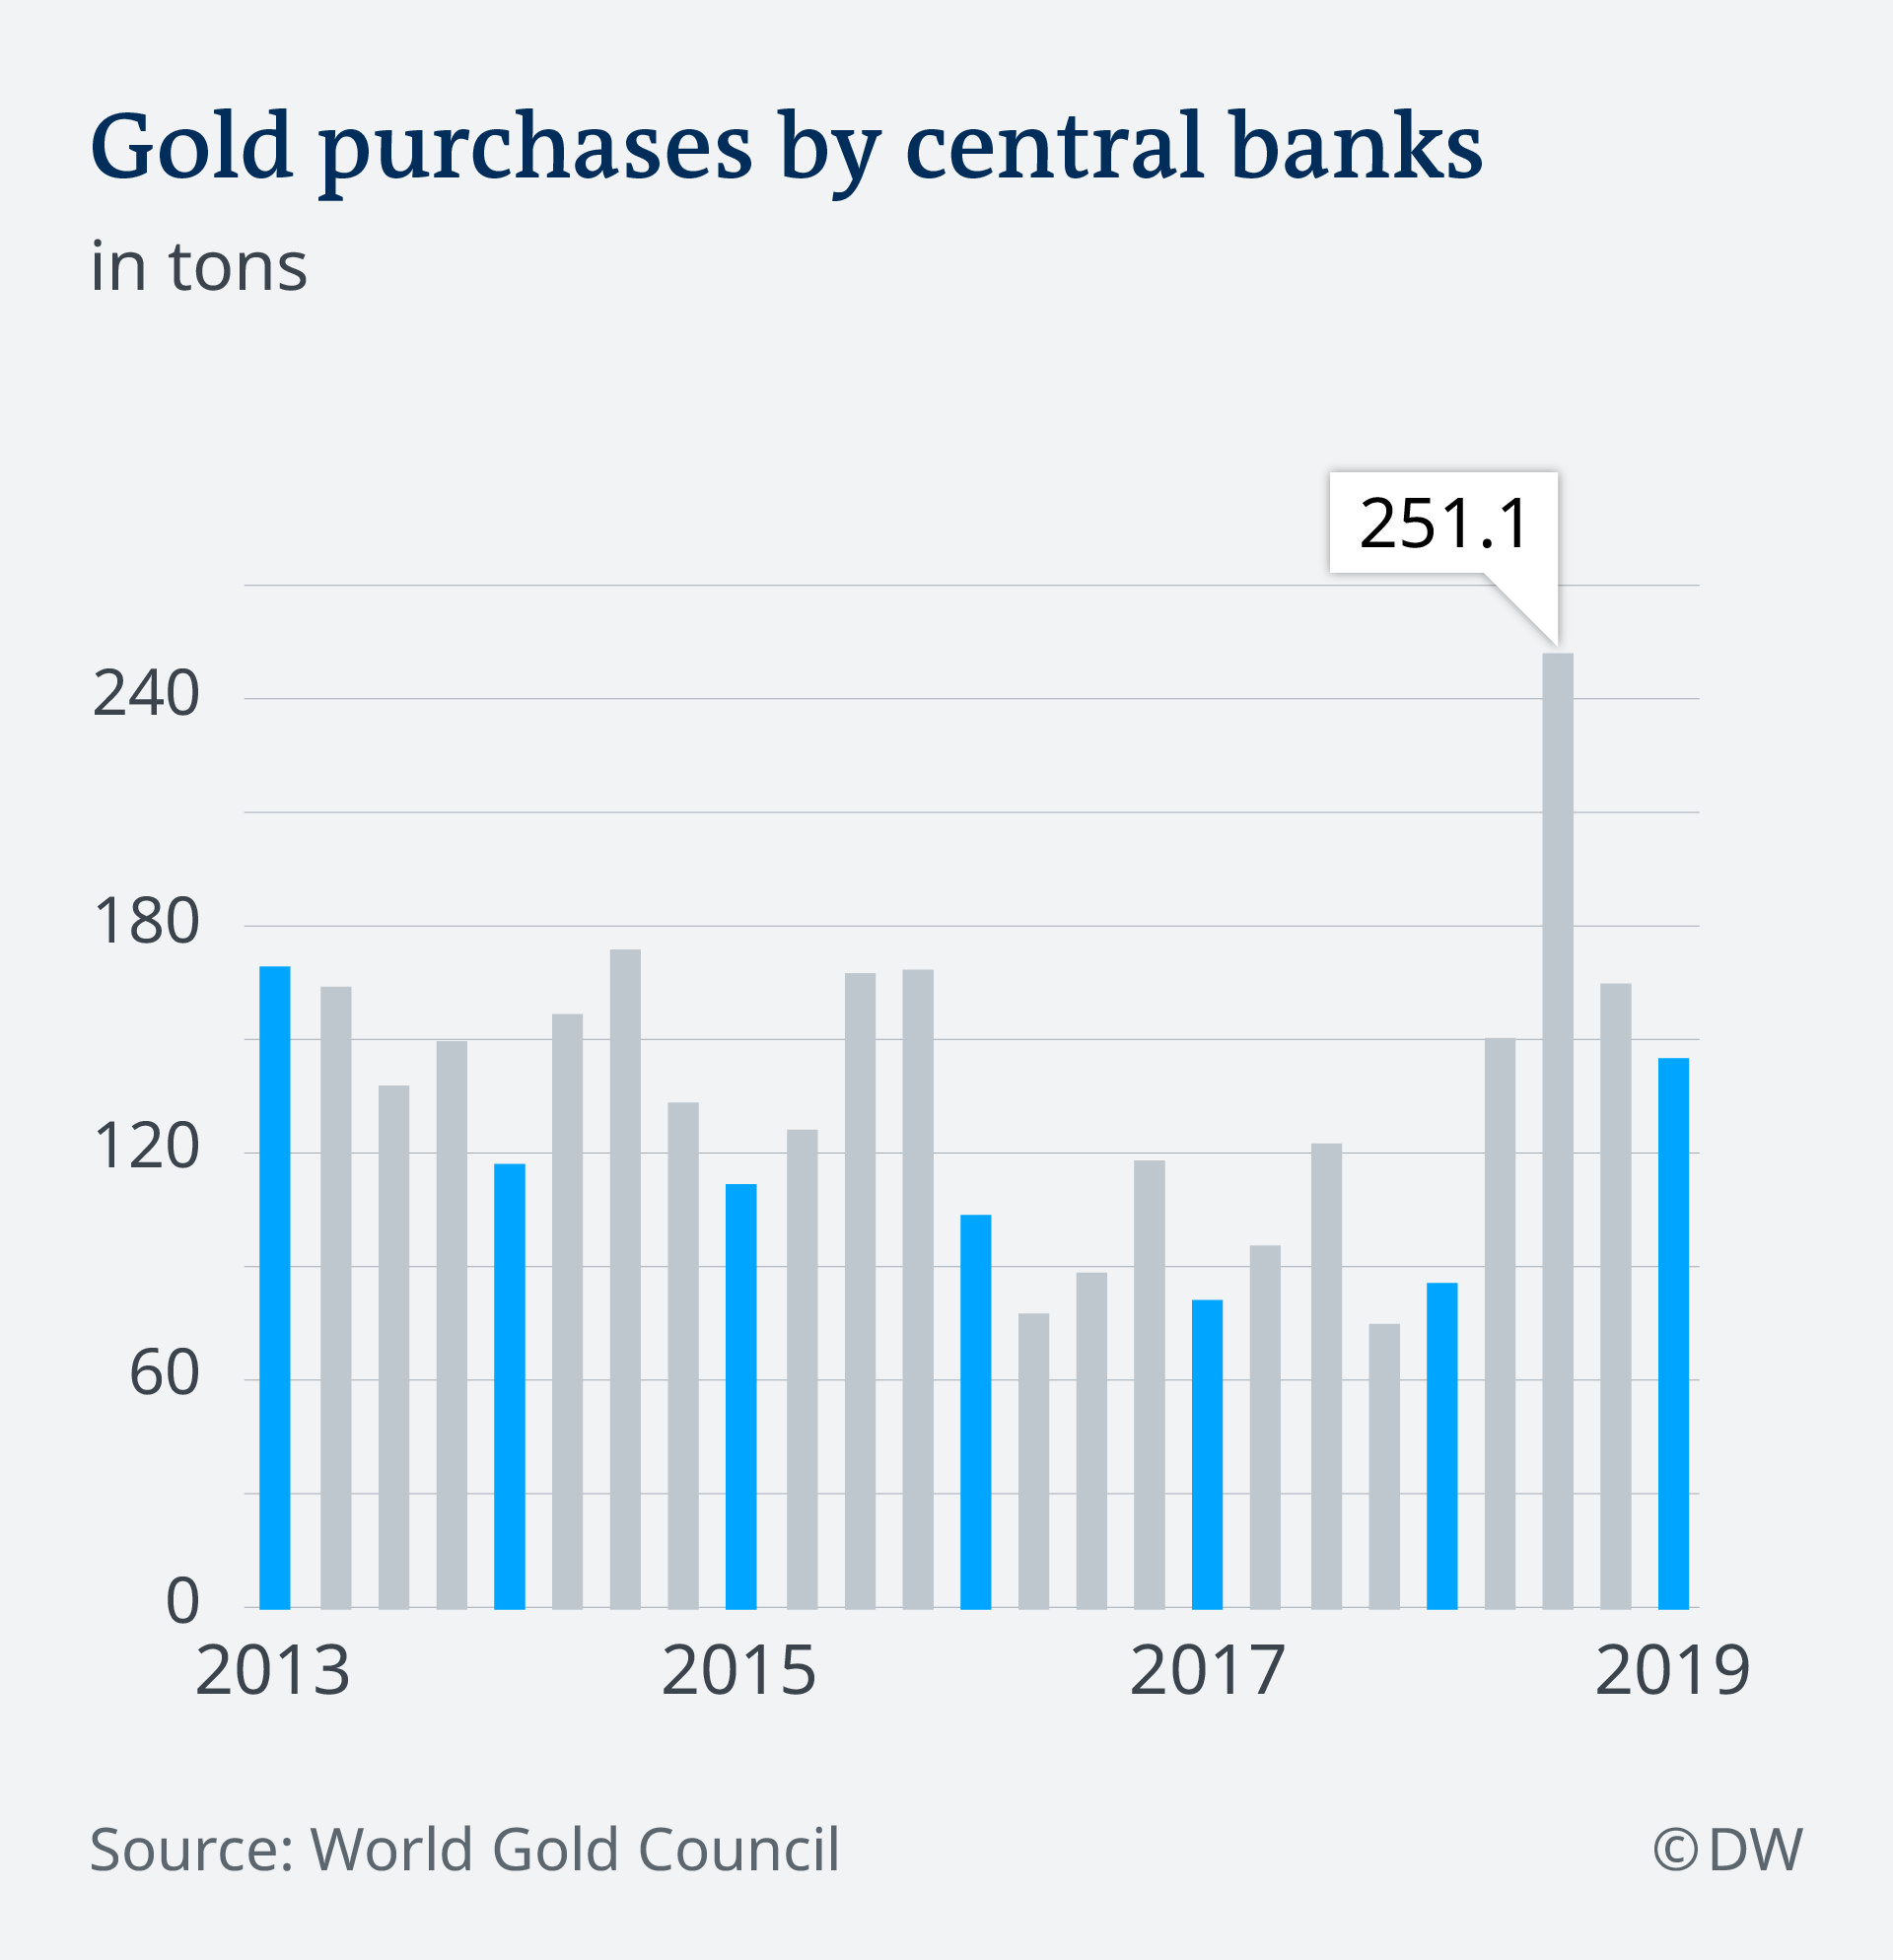 A bar chart showing gold purchases by central banks